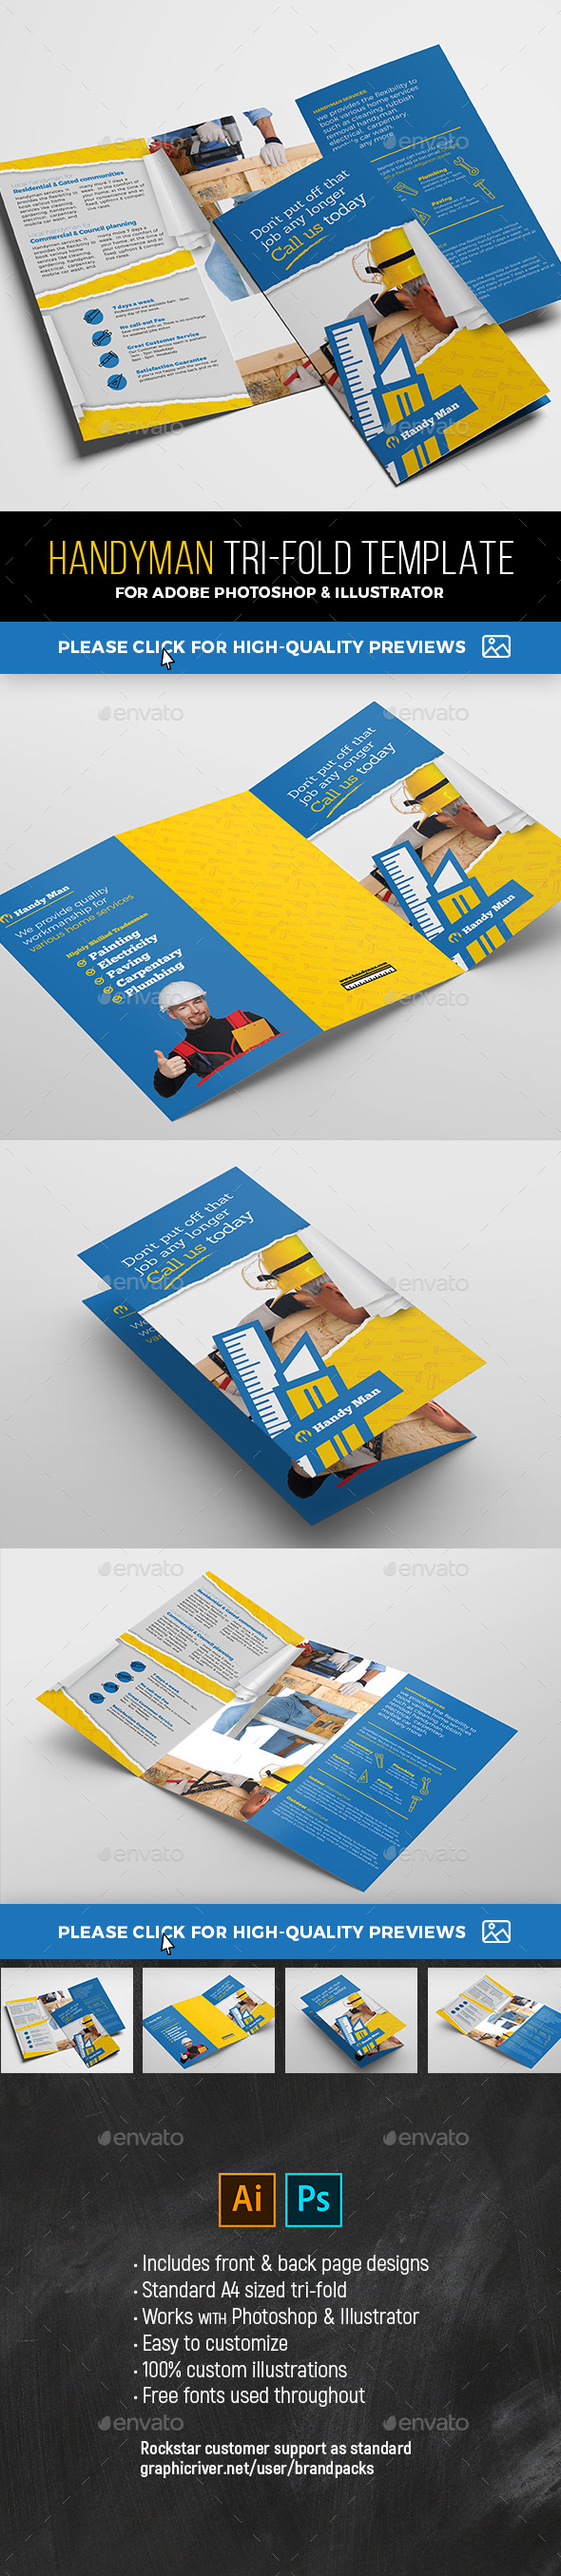 Handyman Tri-Fold Brochure Template - Commerce Flyers